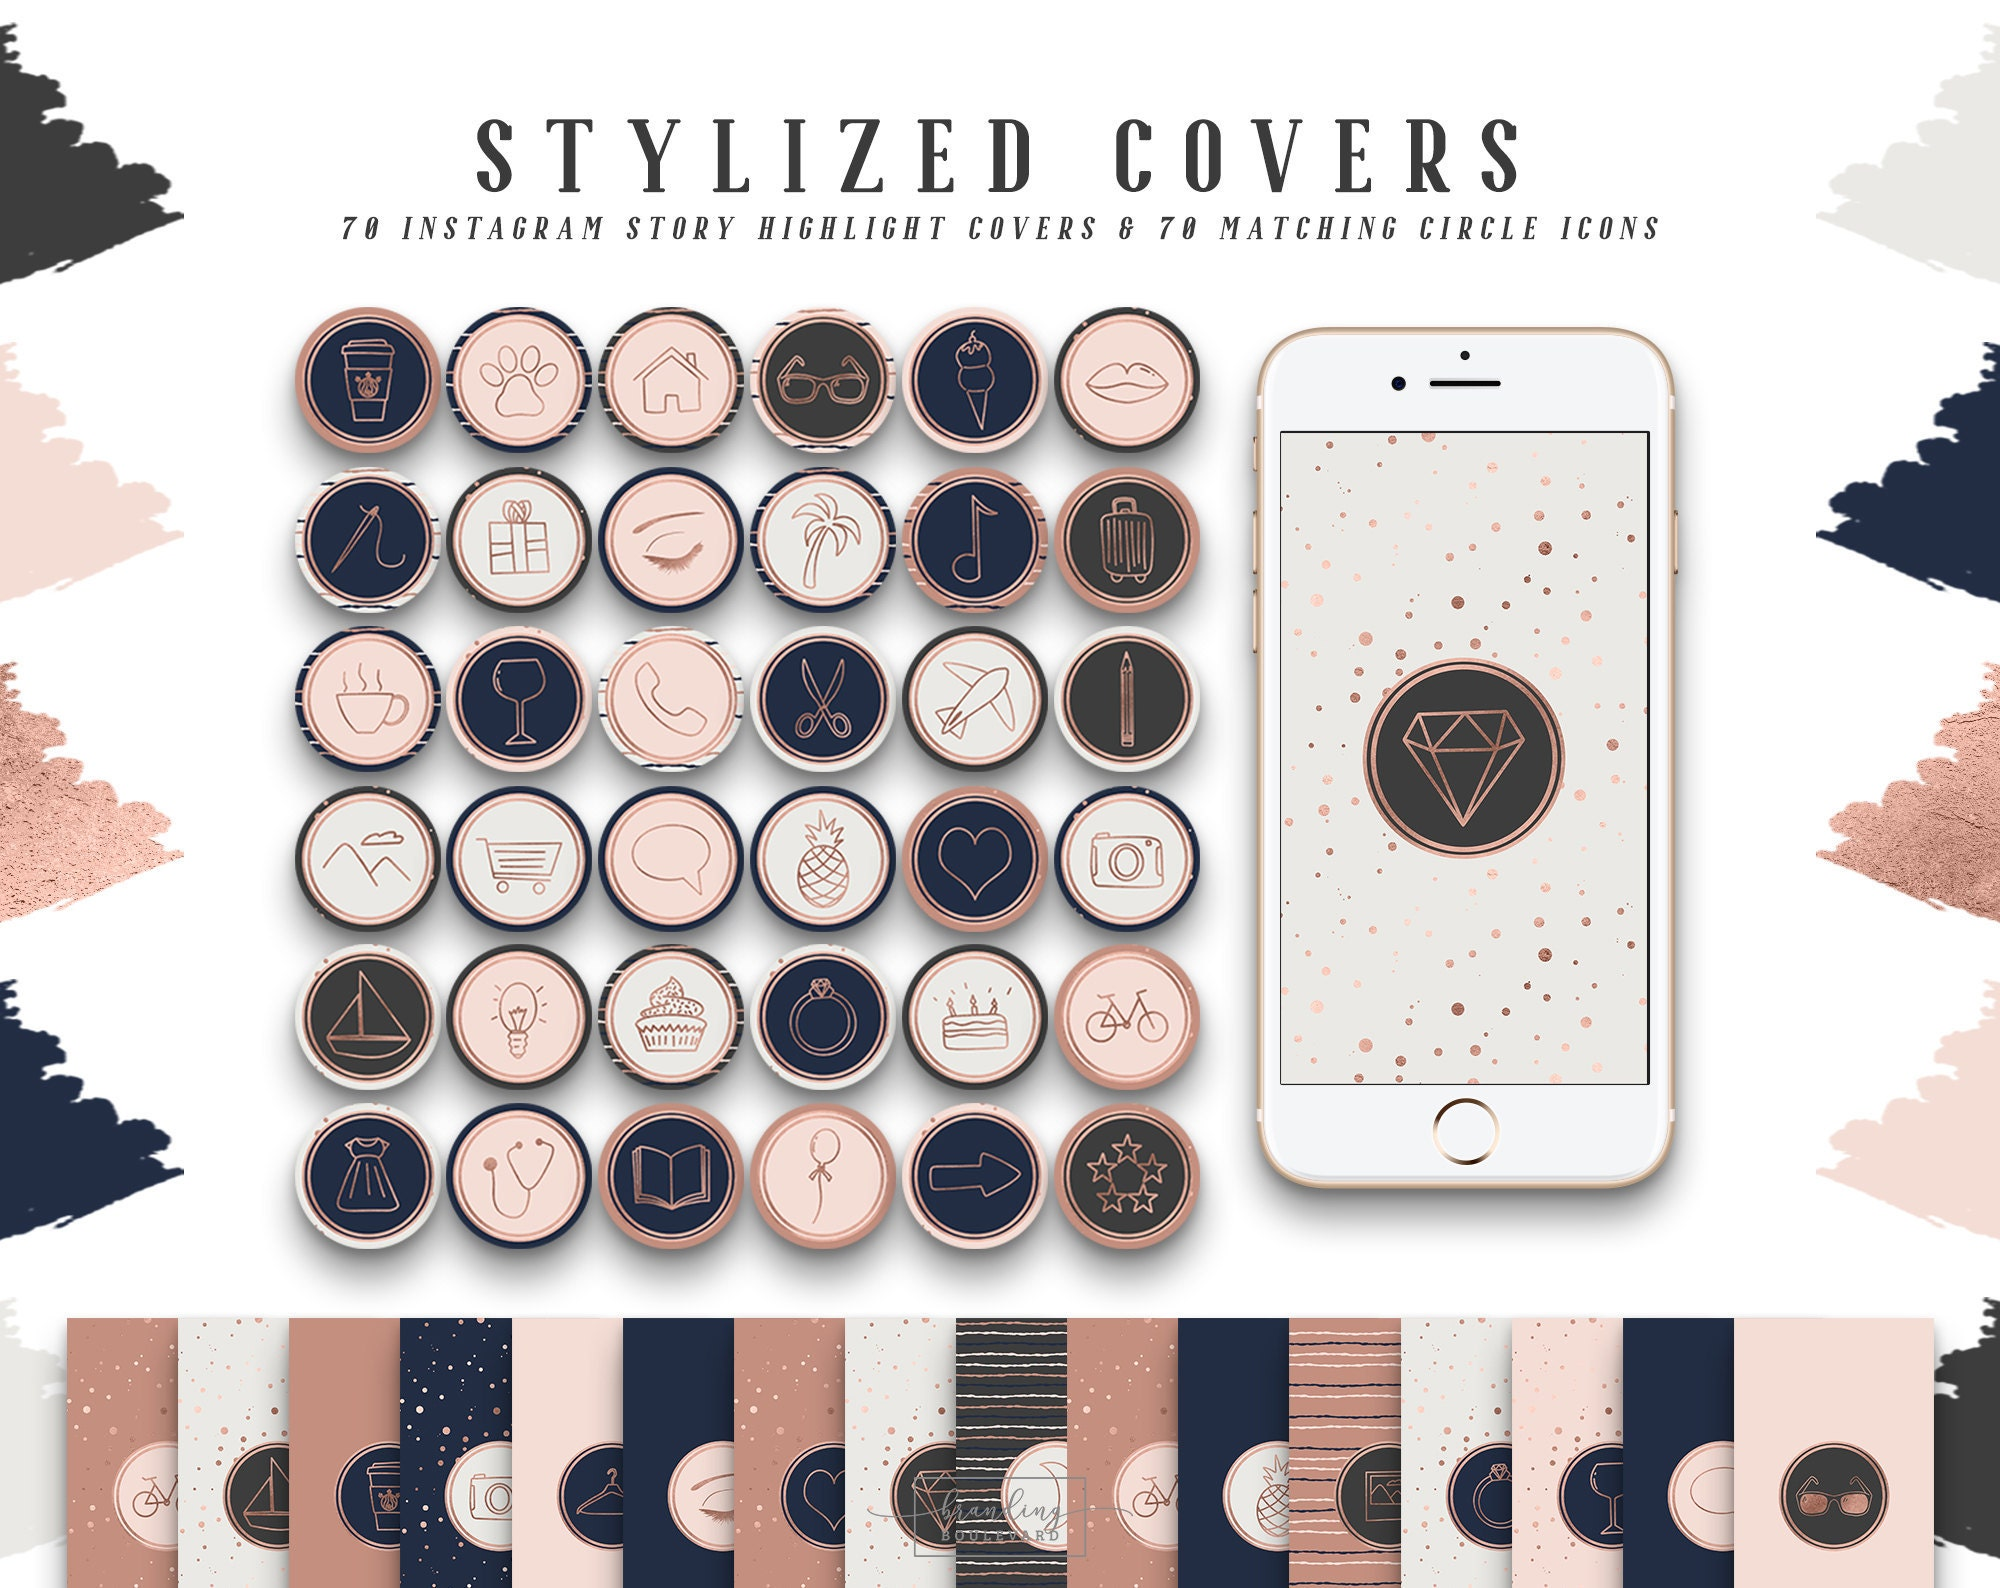 Navy Blue Rose Gold & Blush PinkInstagram Story Highlight Covers & Circle Icons - Matching Graphics for Your brand